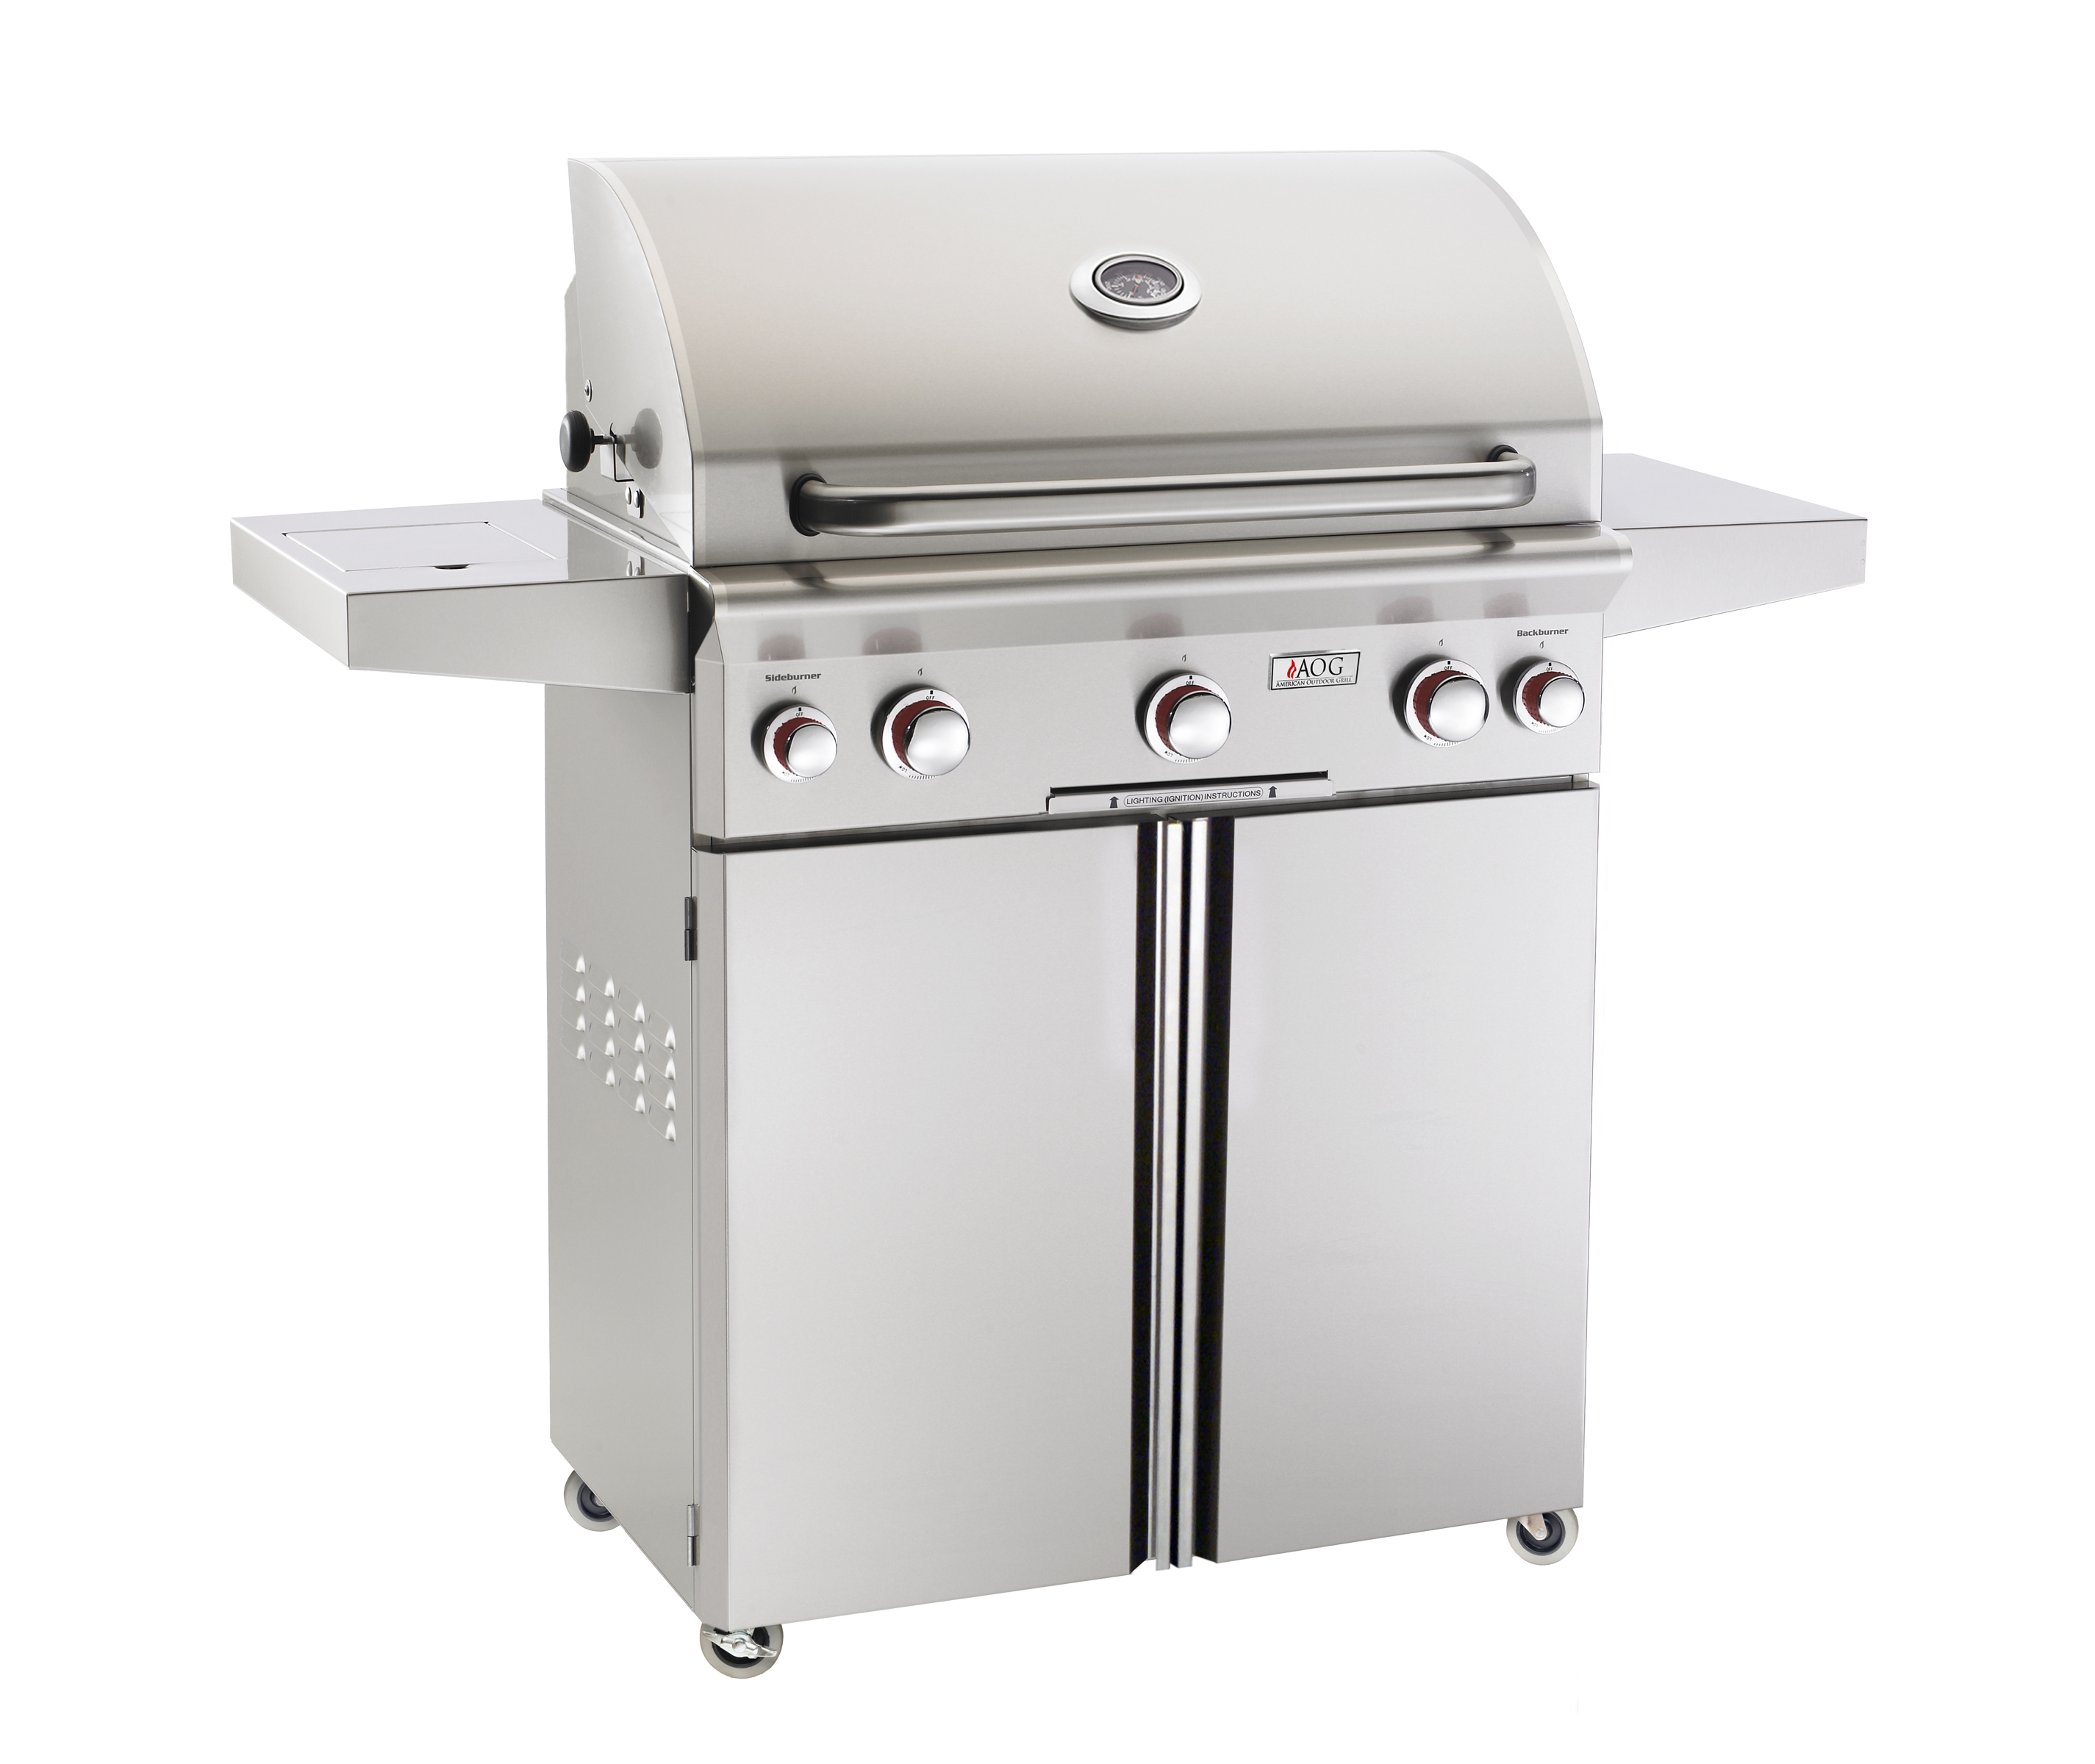 aog-30pct-30-t-series-portable-grill-closed.jpg